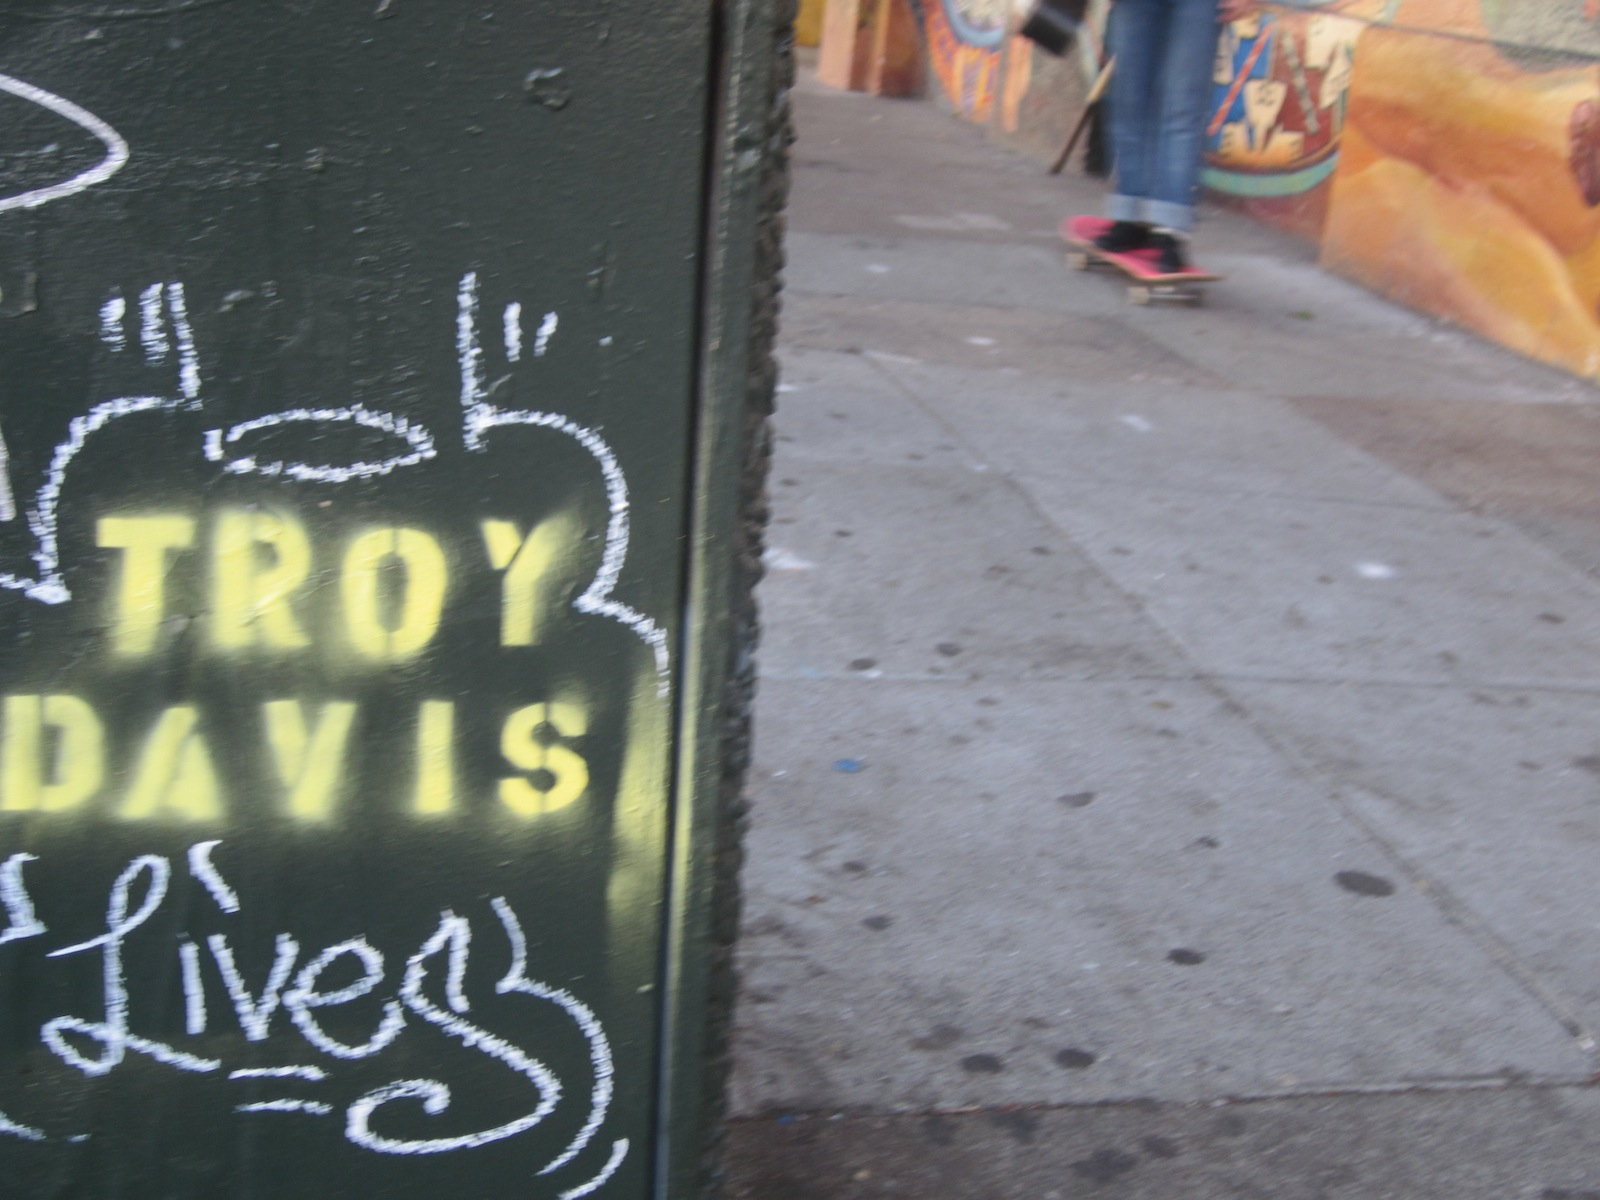 Tags for Troy Davis